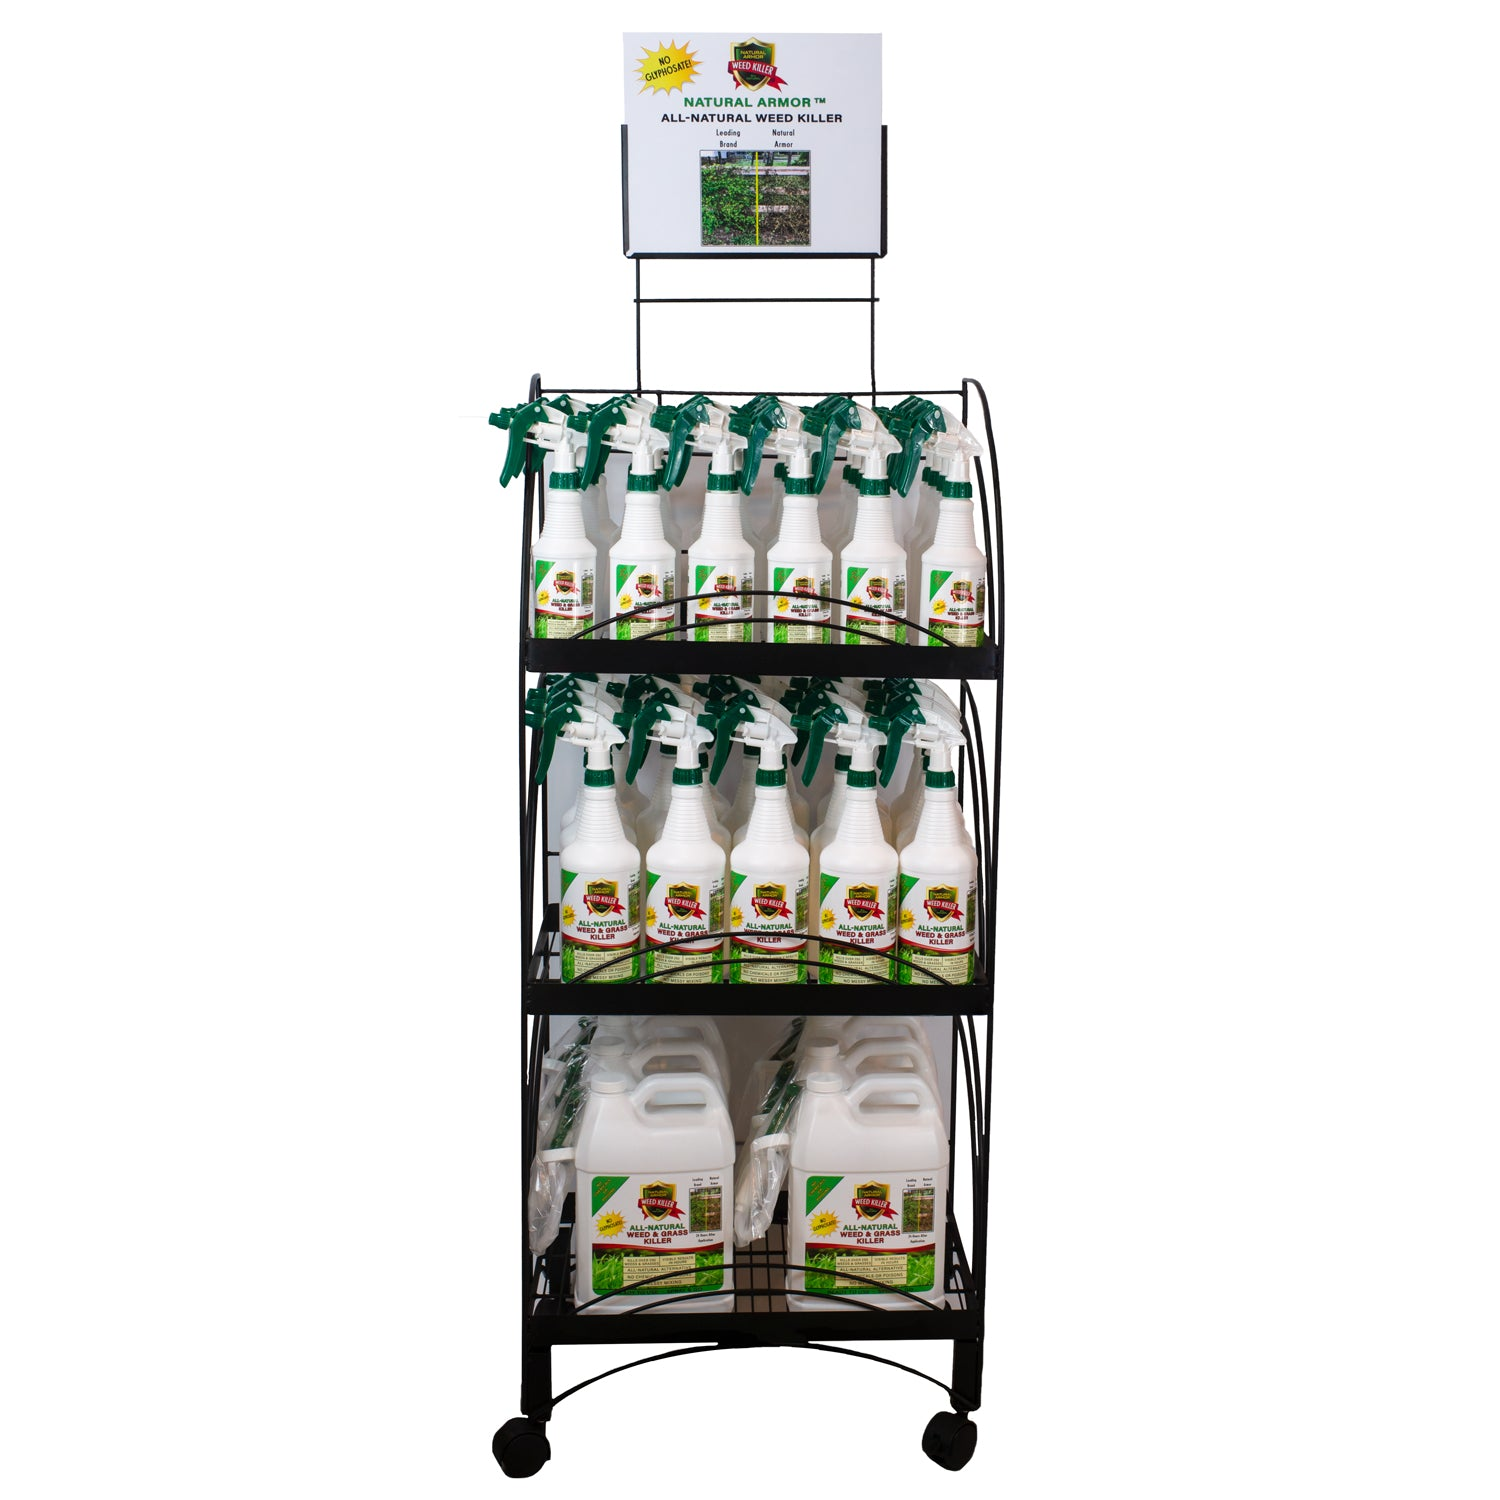 All-Natural Weed Killer Ready-to-Use — #1 Starter Rack